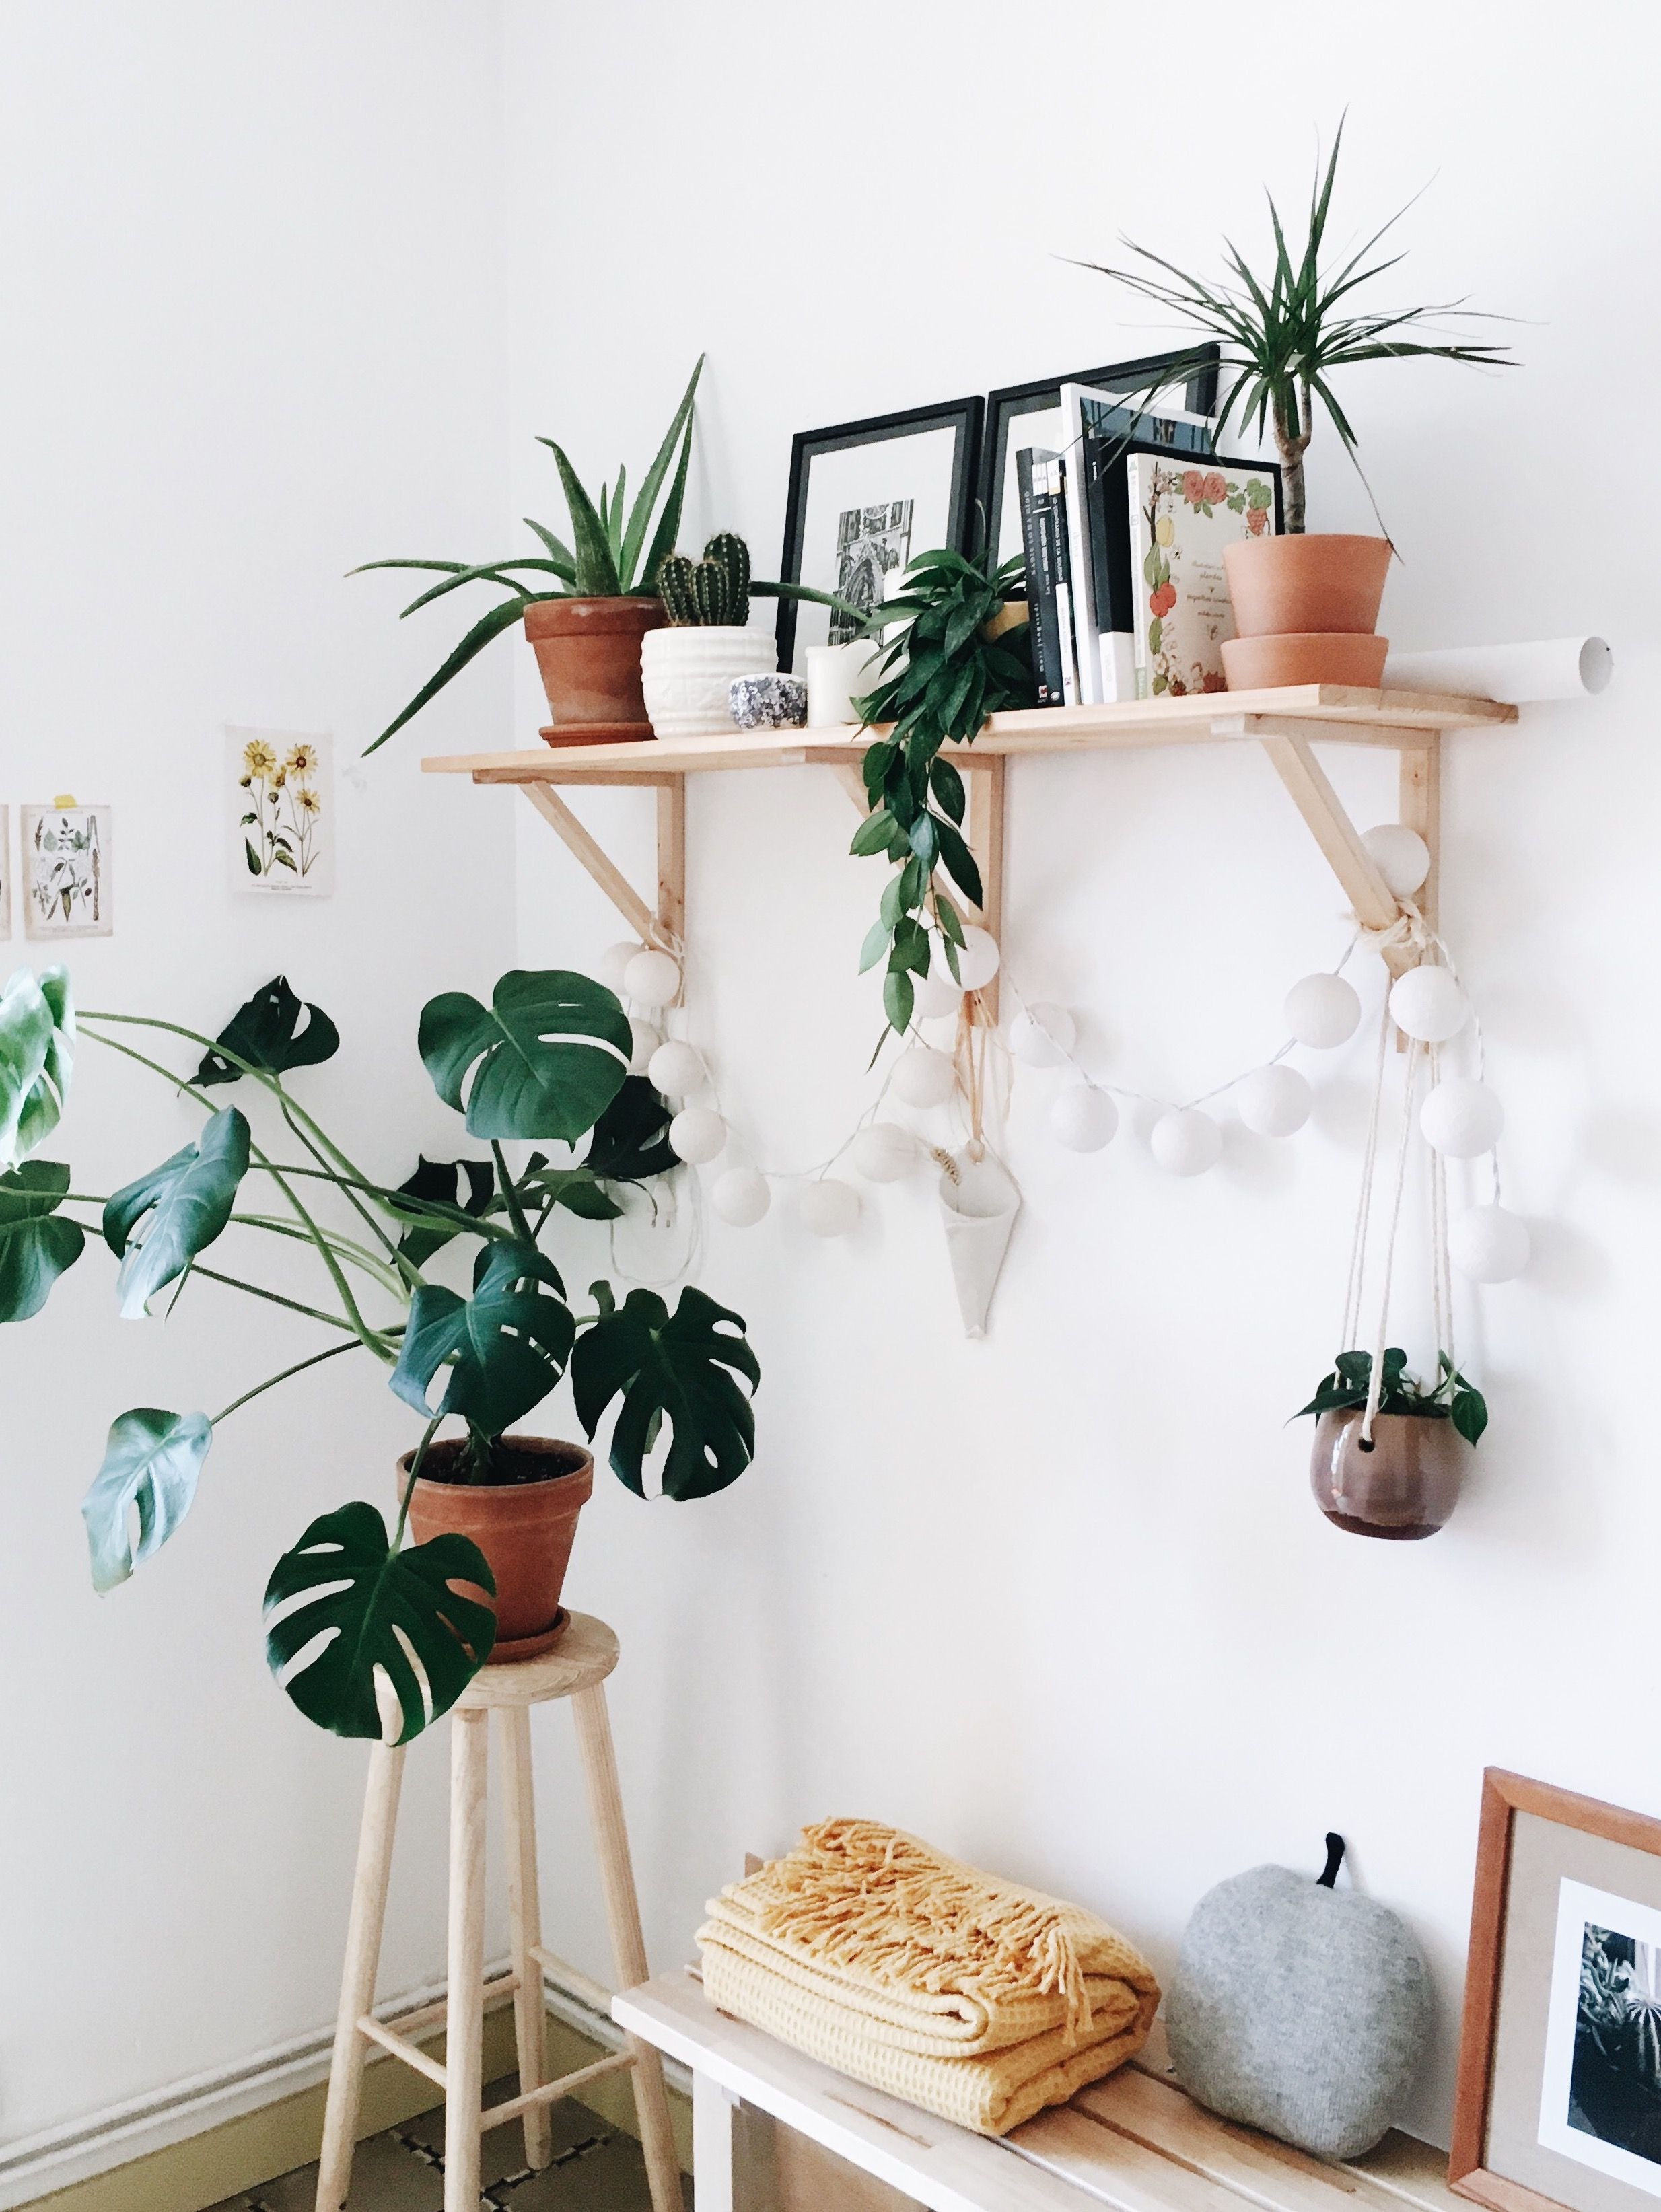 Home Decor Plants Casajangui The Hanging Plants Shelves Decor Boho